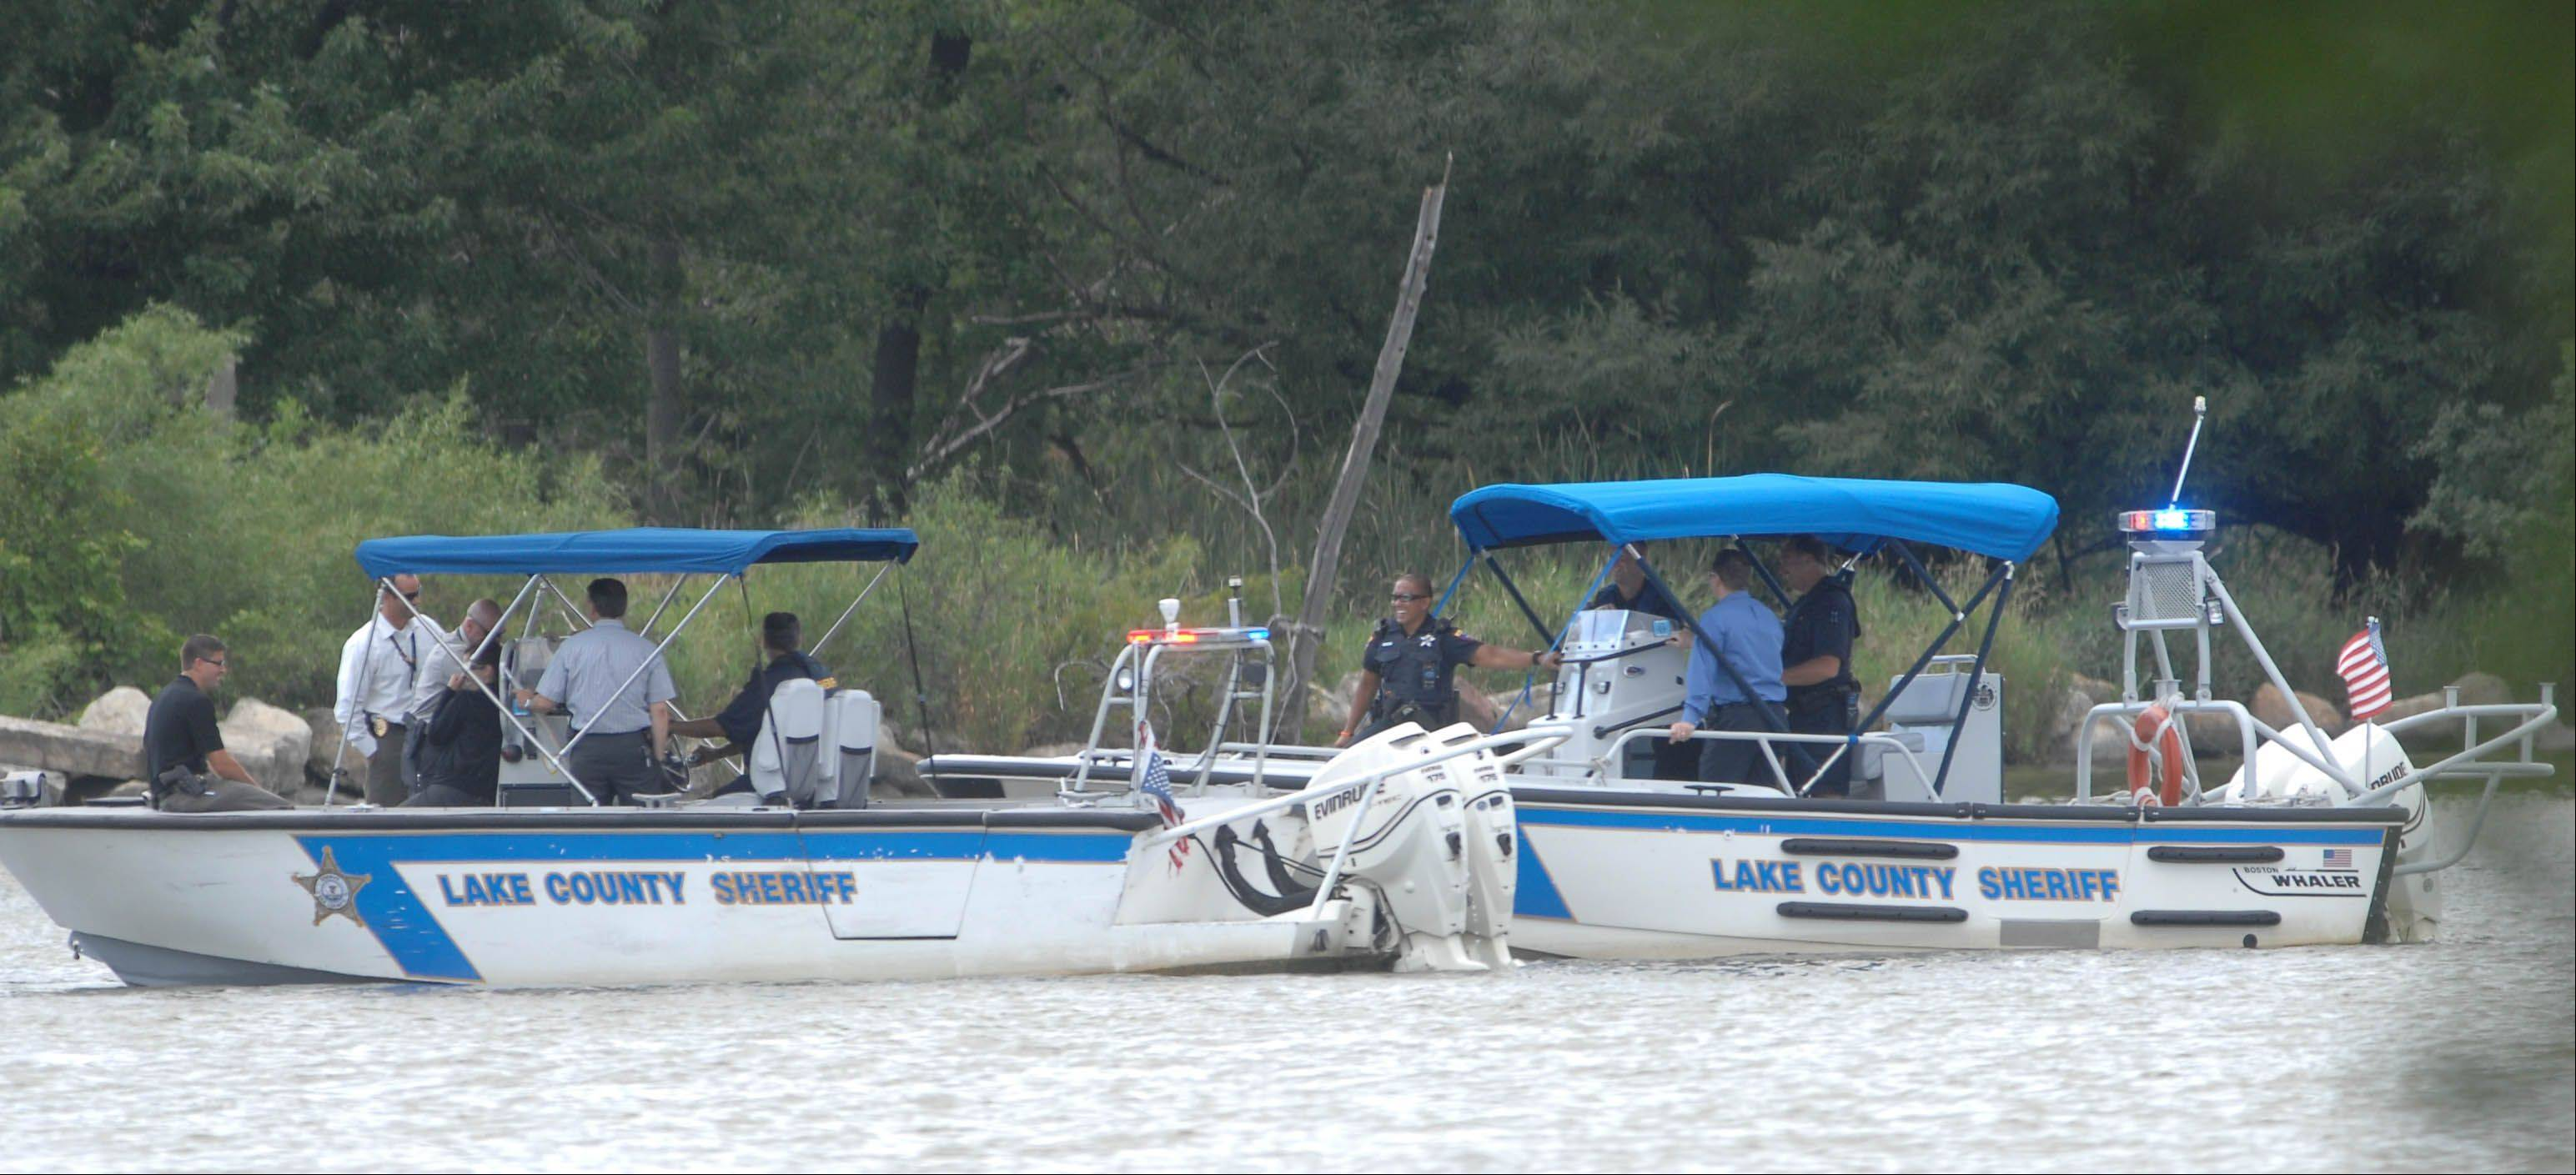 The Lake County sheriff's marine units will patrol the Chain O' Lakes during the holiday weekend.